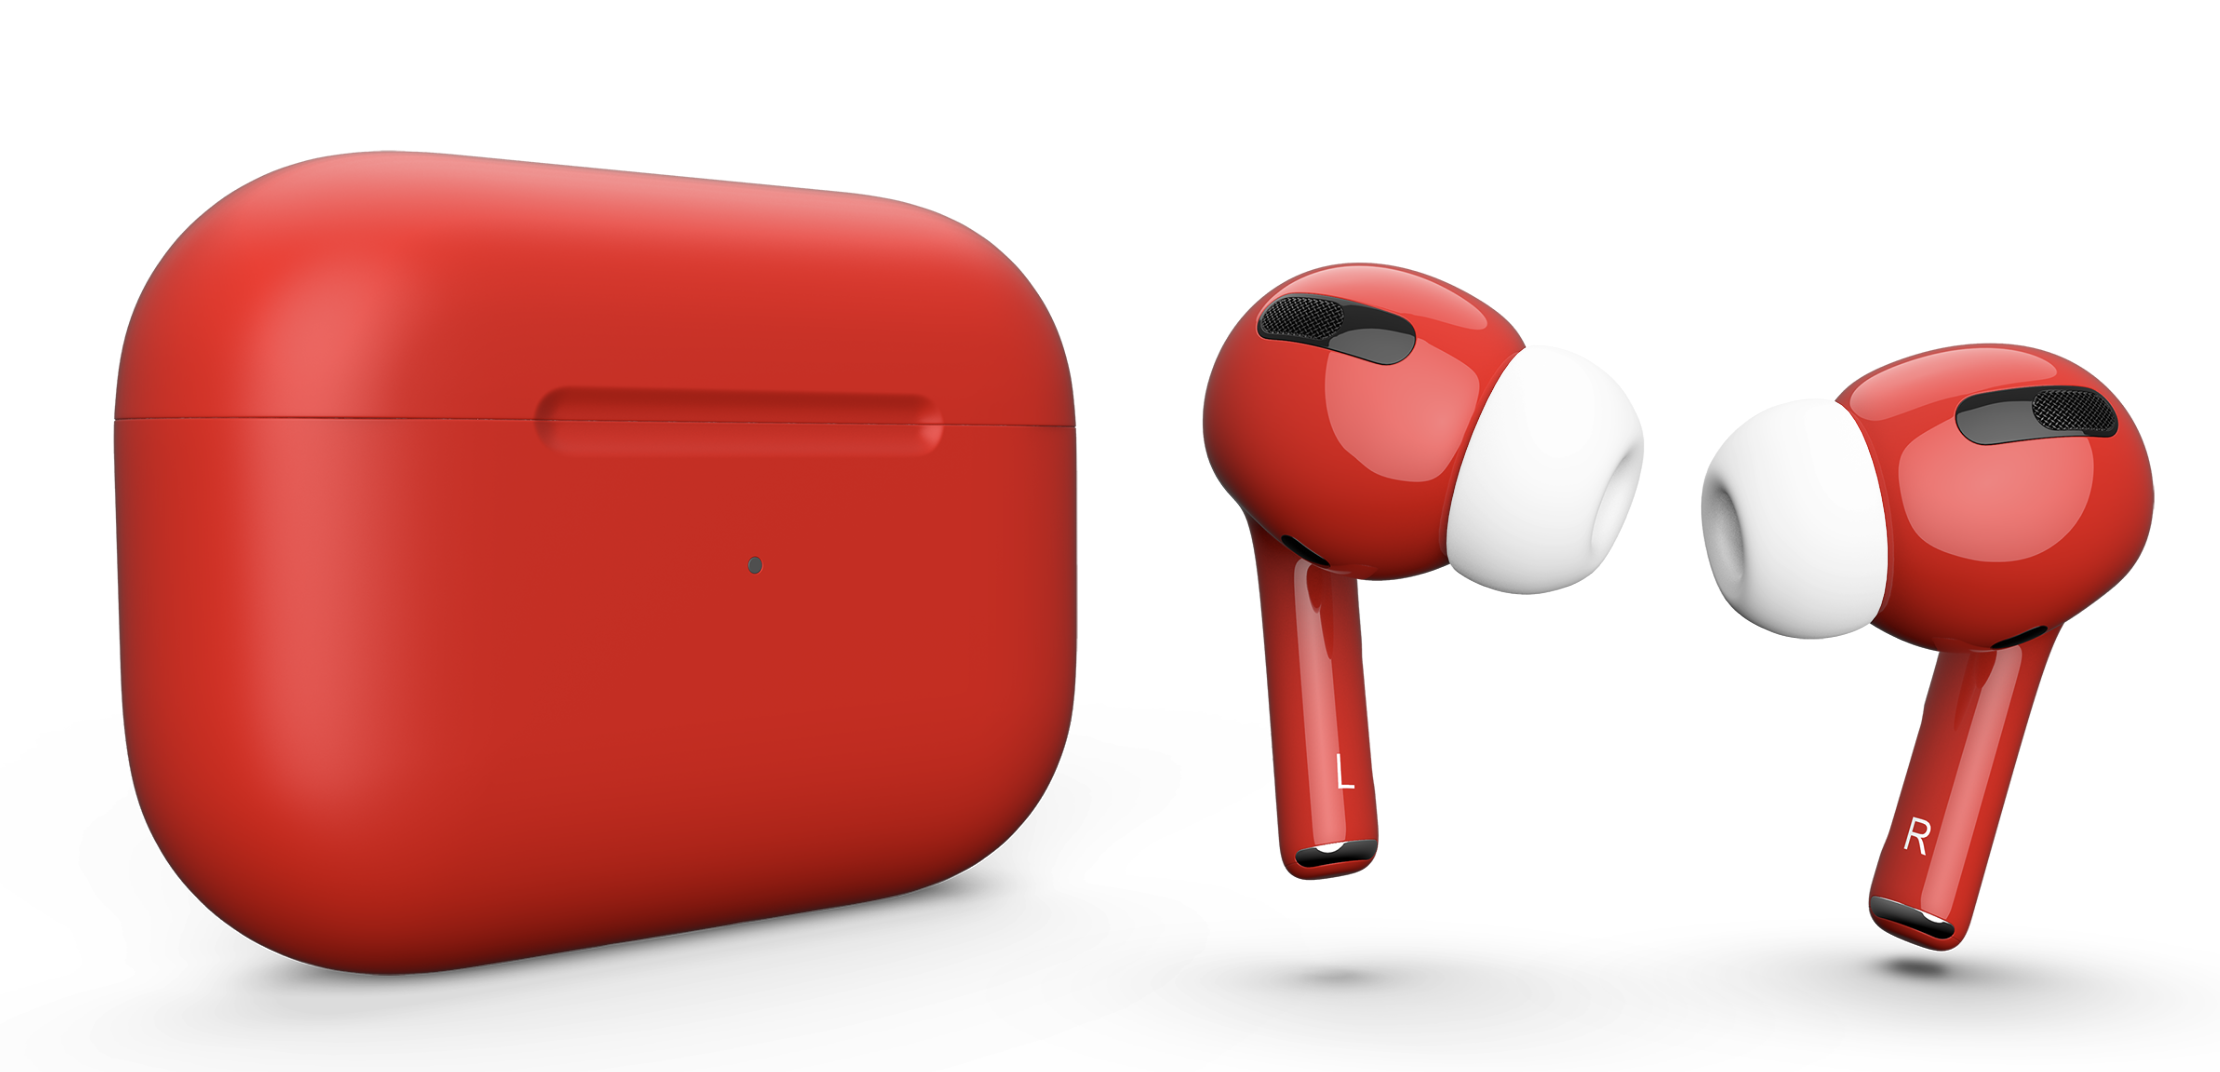 Apple Could Be Working On An Airpods Pro Lite Earbuds For A 2020